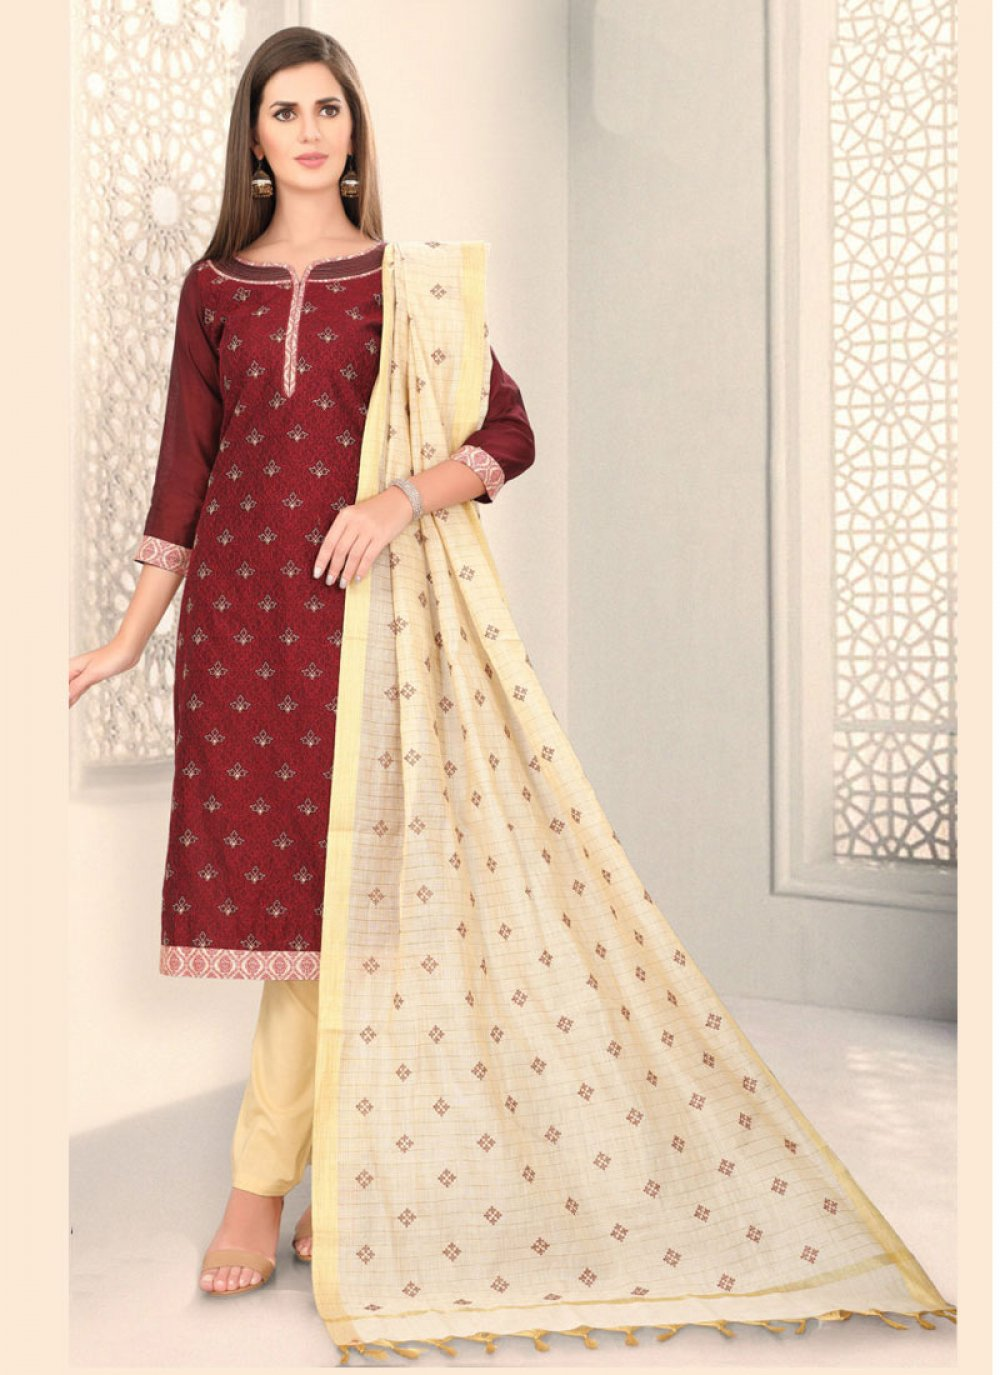 Fancy Chanderi Churidar Designer Suit in Maroon